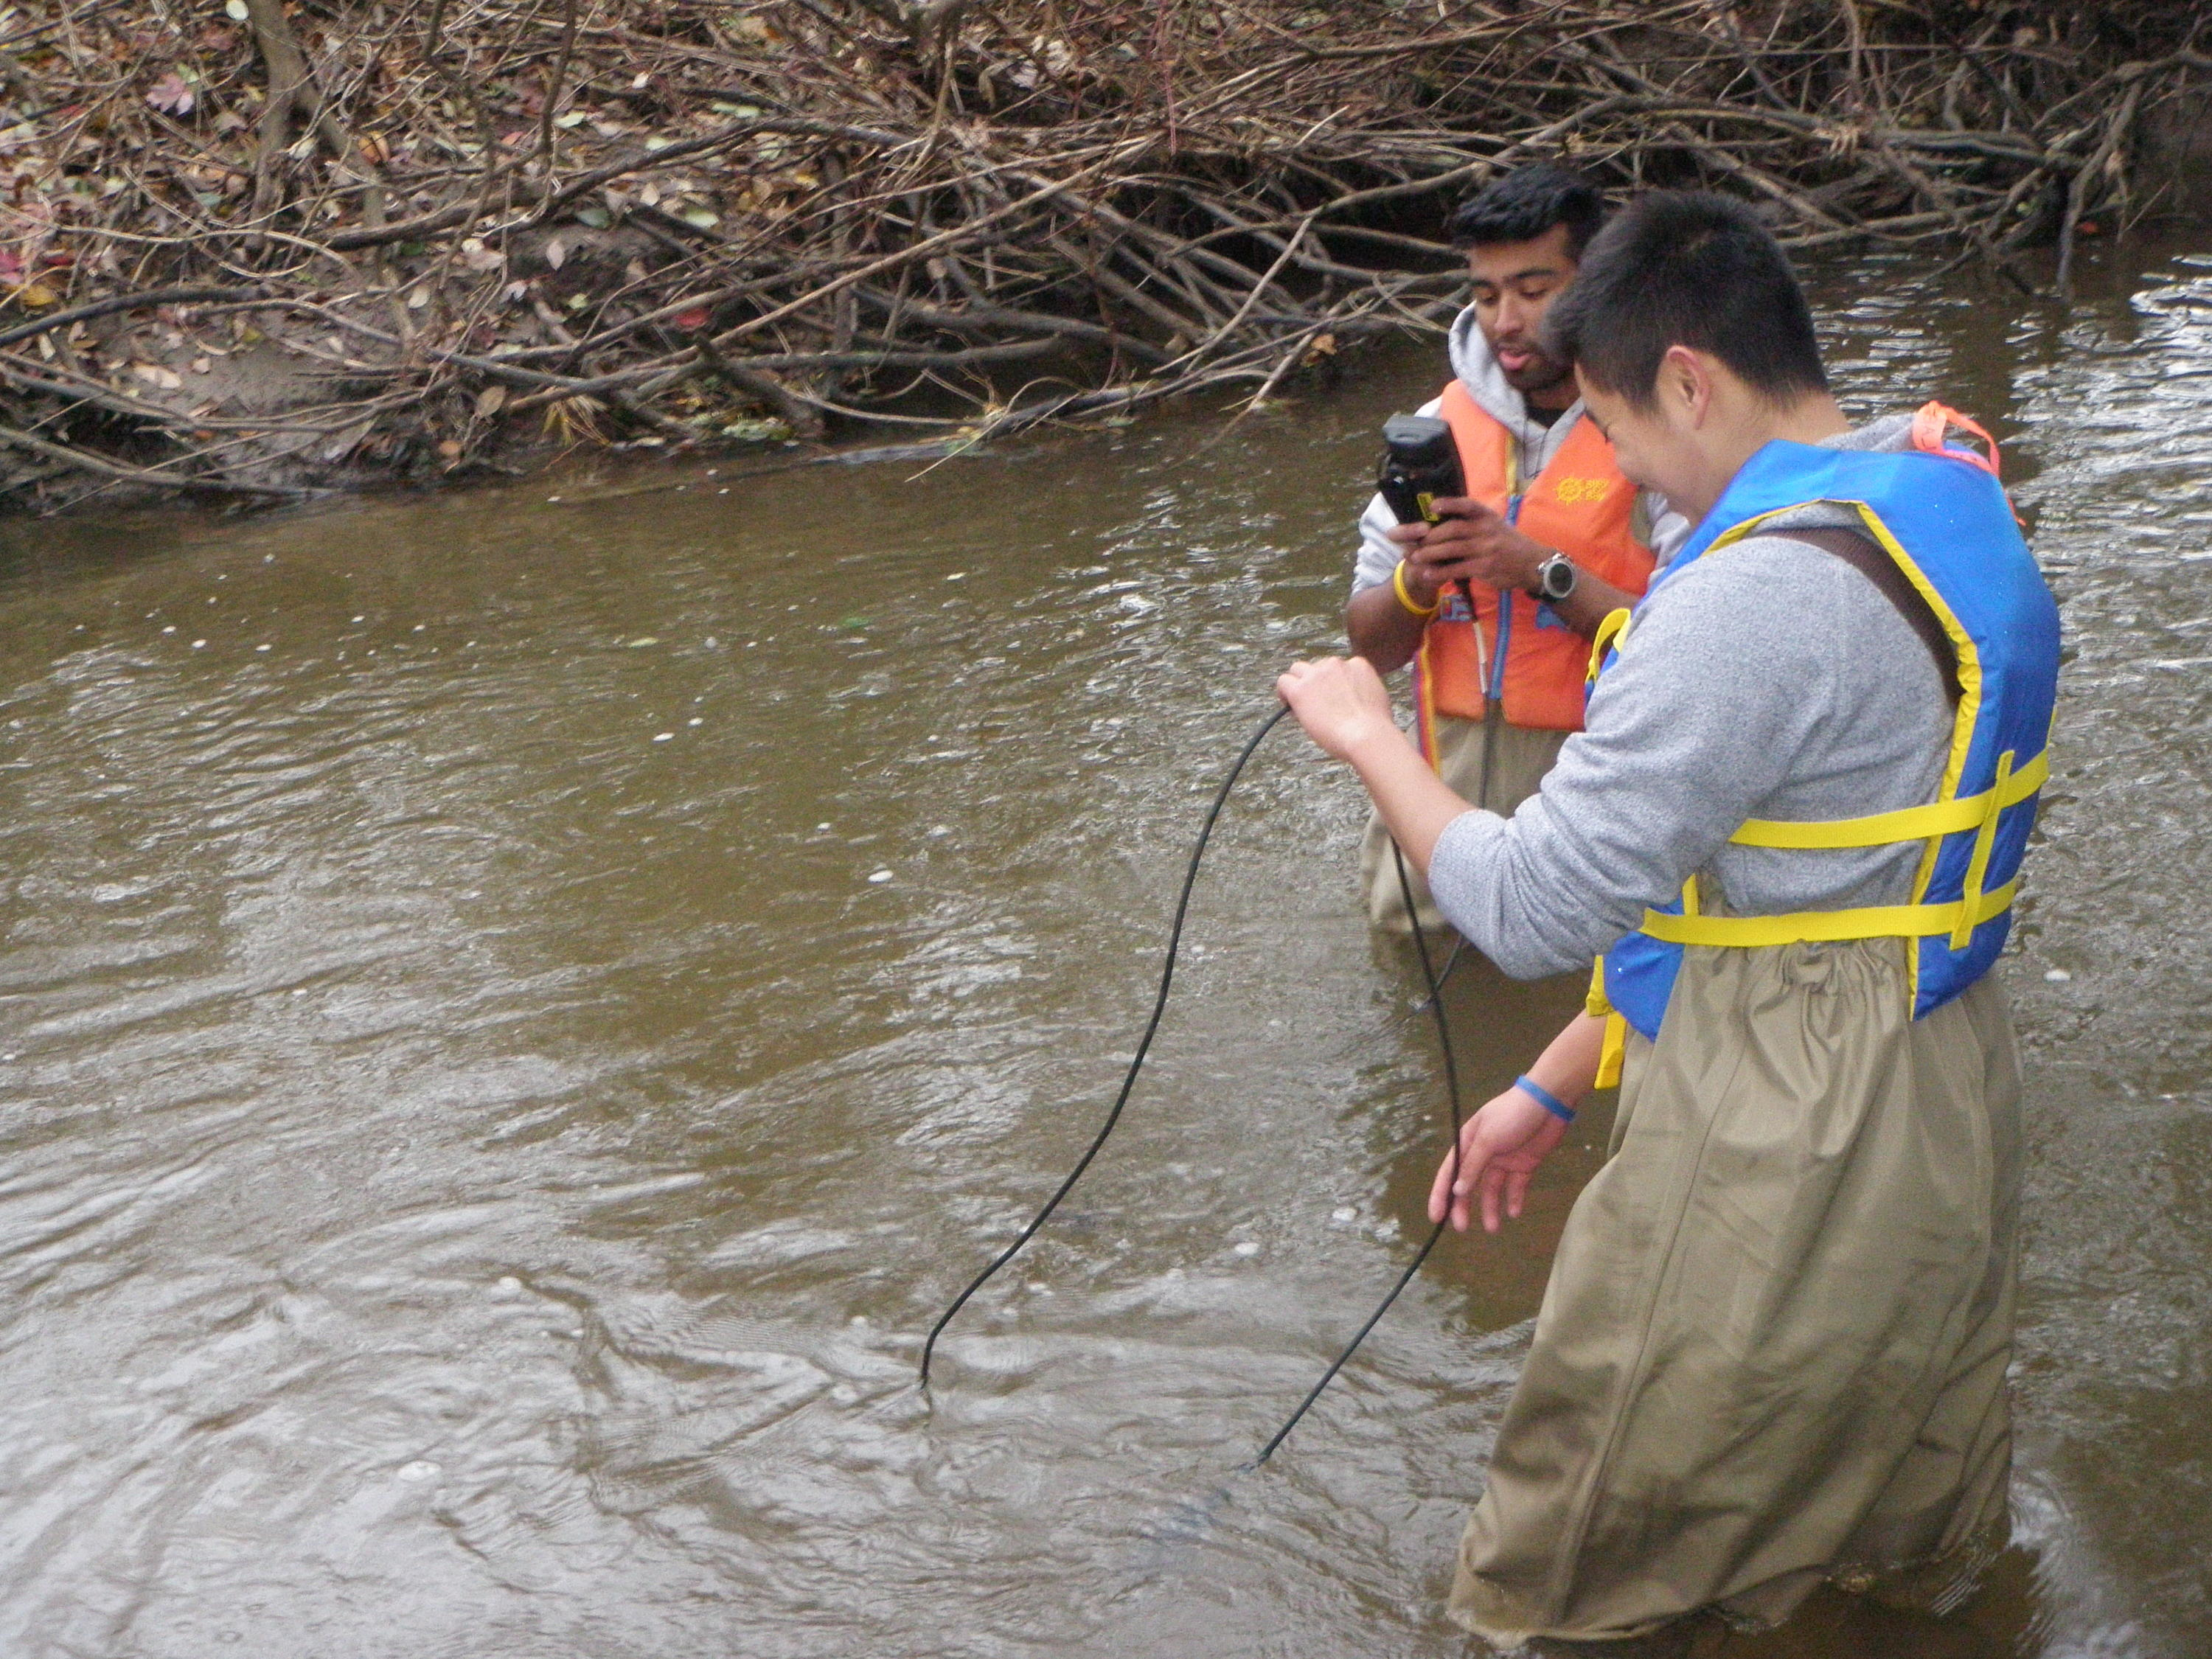 two students in a river using some equipment